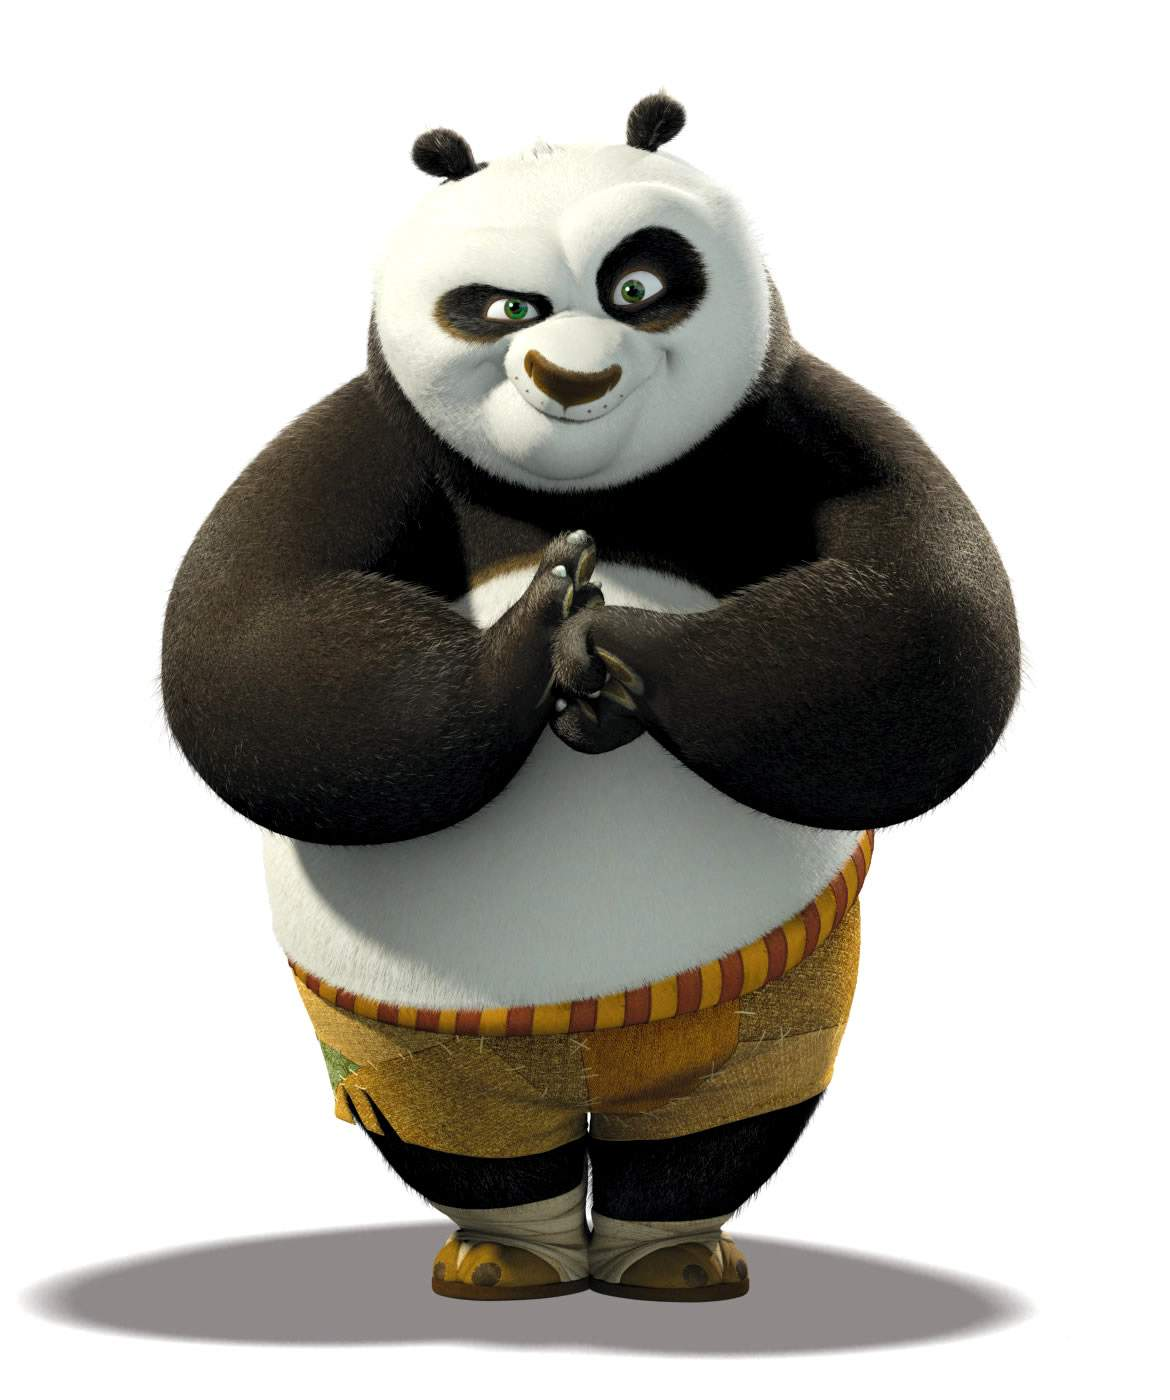 The Kung Fu Panda Images HD Wallpaper And Background Photos